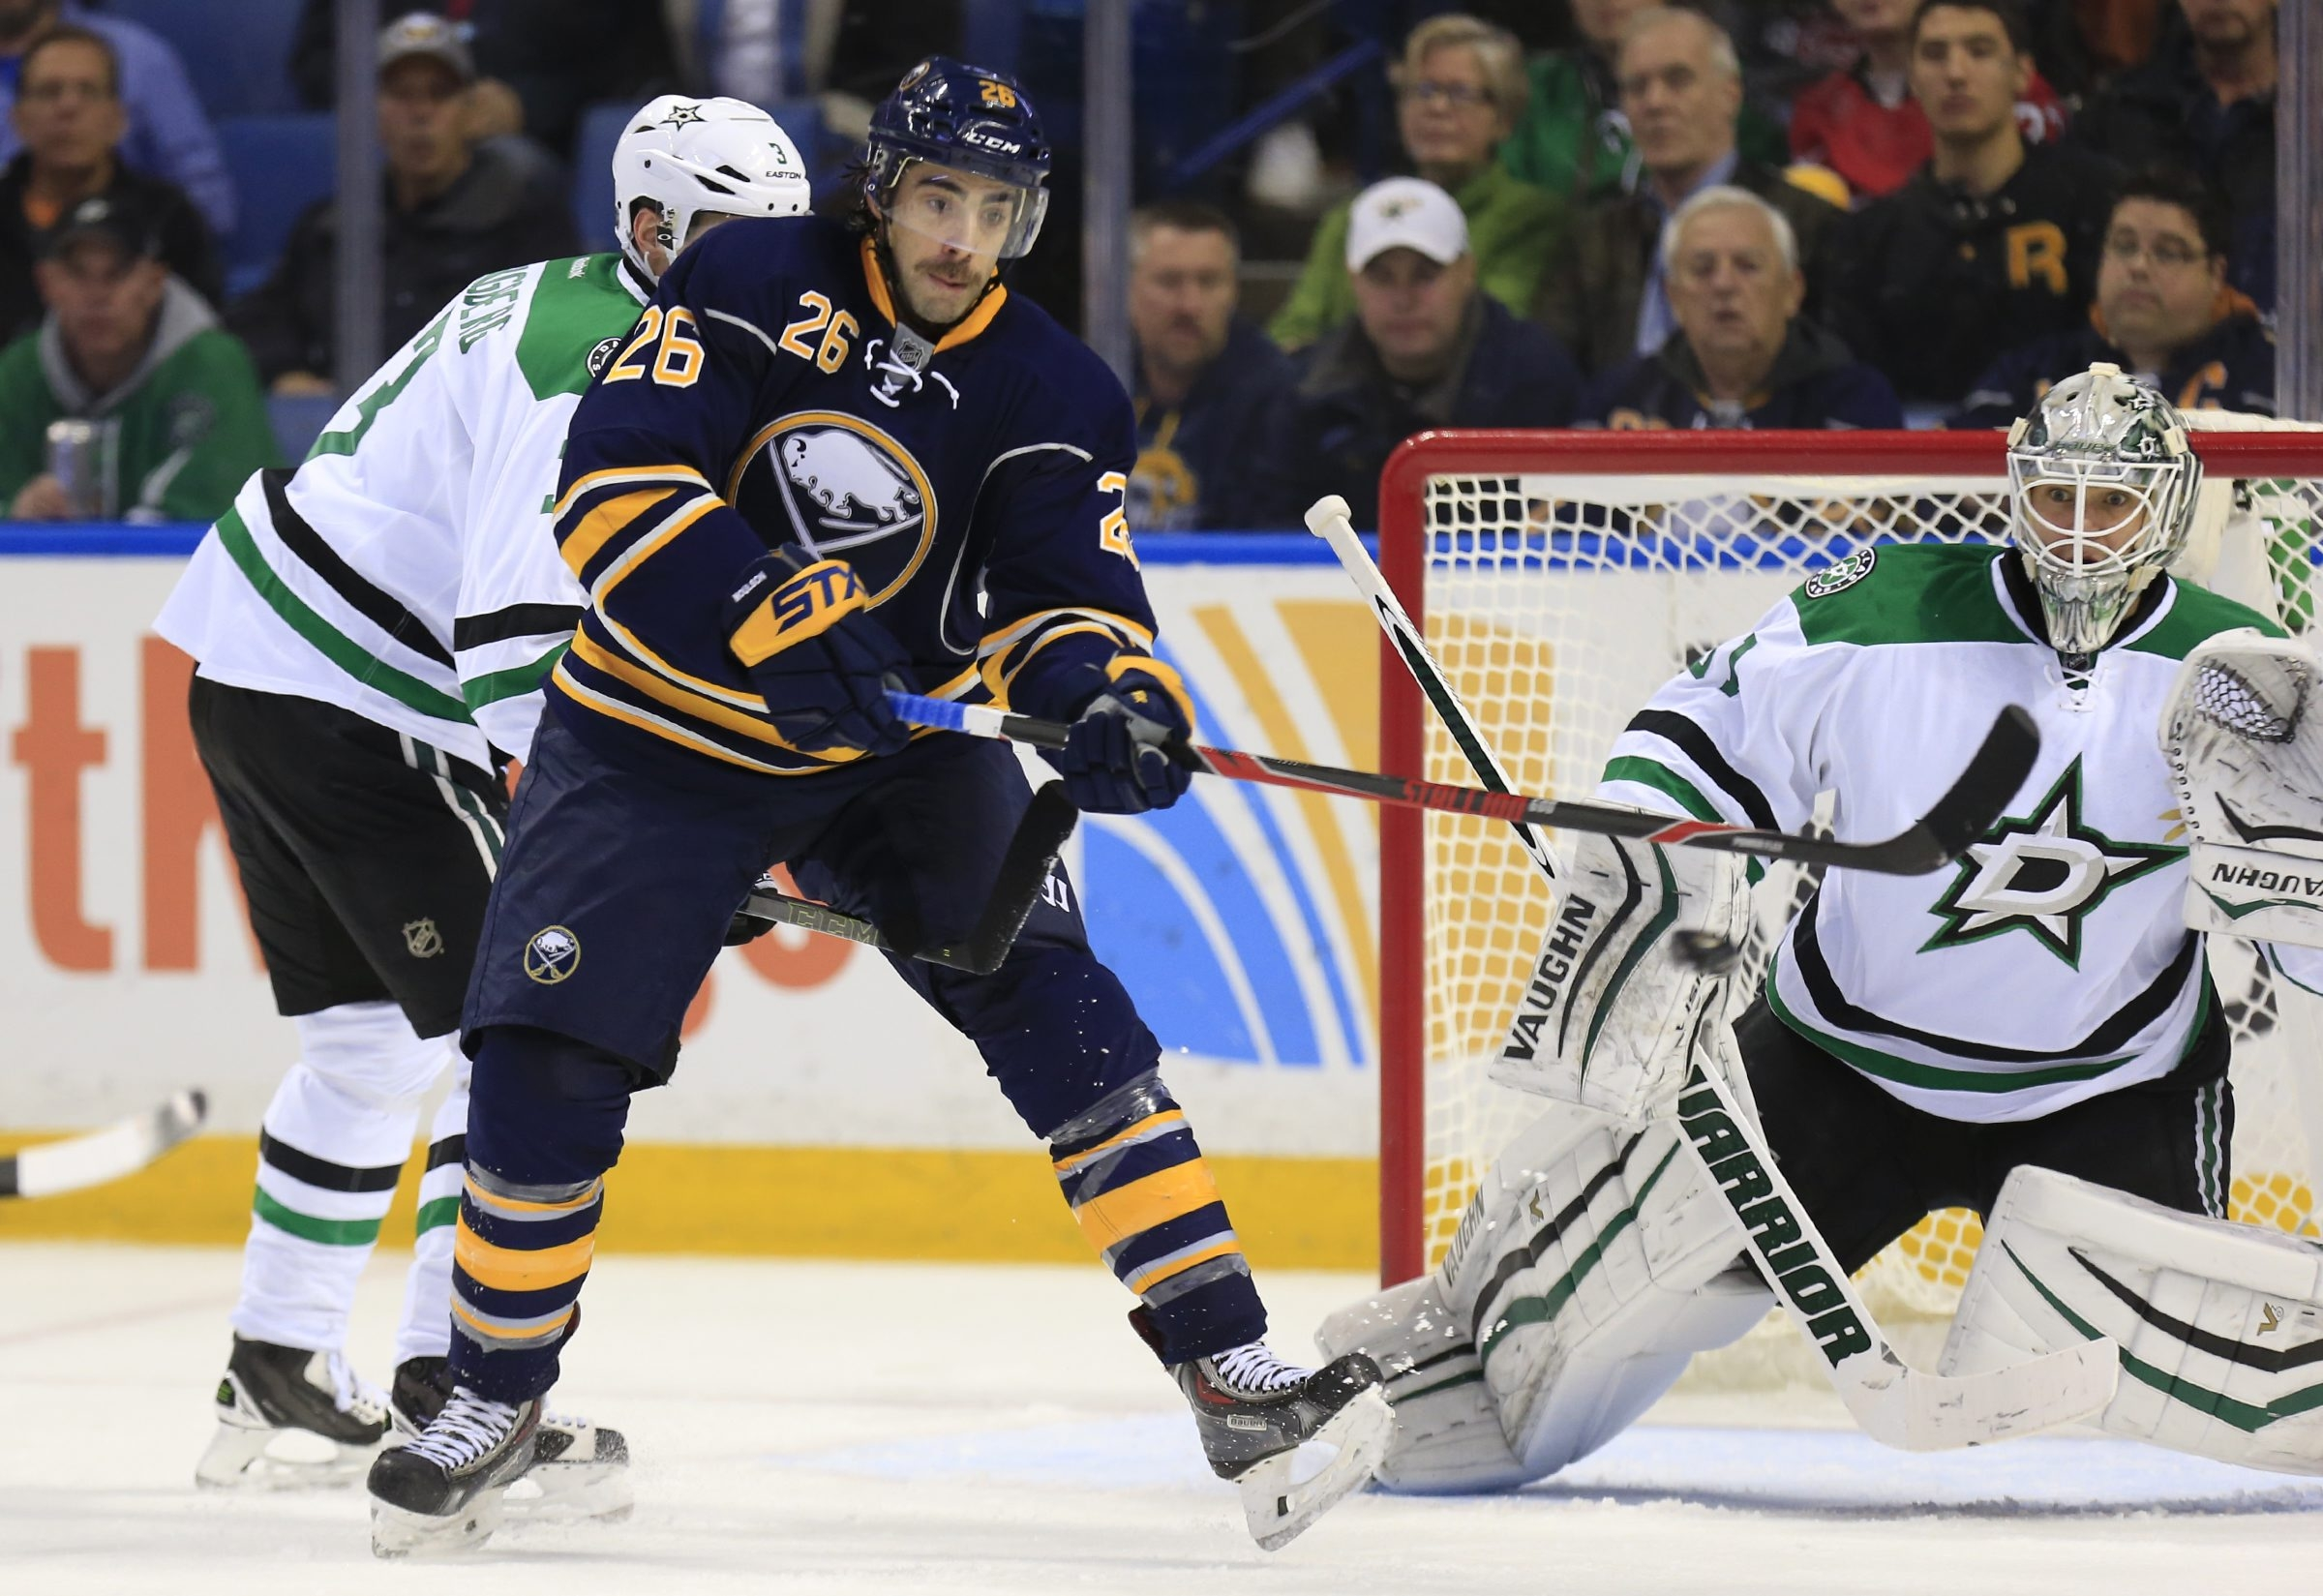 Buffalo Sabres Matt Moulson try to tips a puck past the Dallas Stars Antti Niemi during second period action at the First Niagara Center on Tuesday, Nov. 17, 2015. (Harry Scull Jr./Buffalo News)